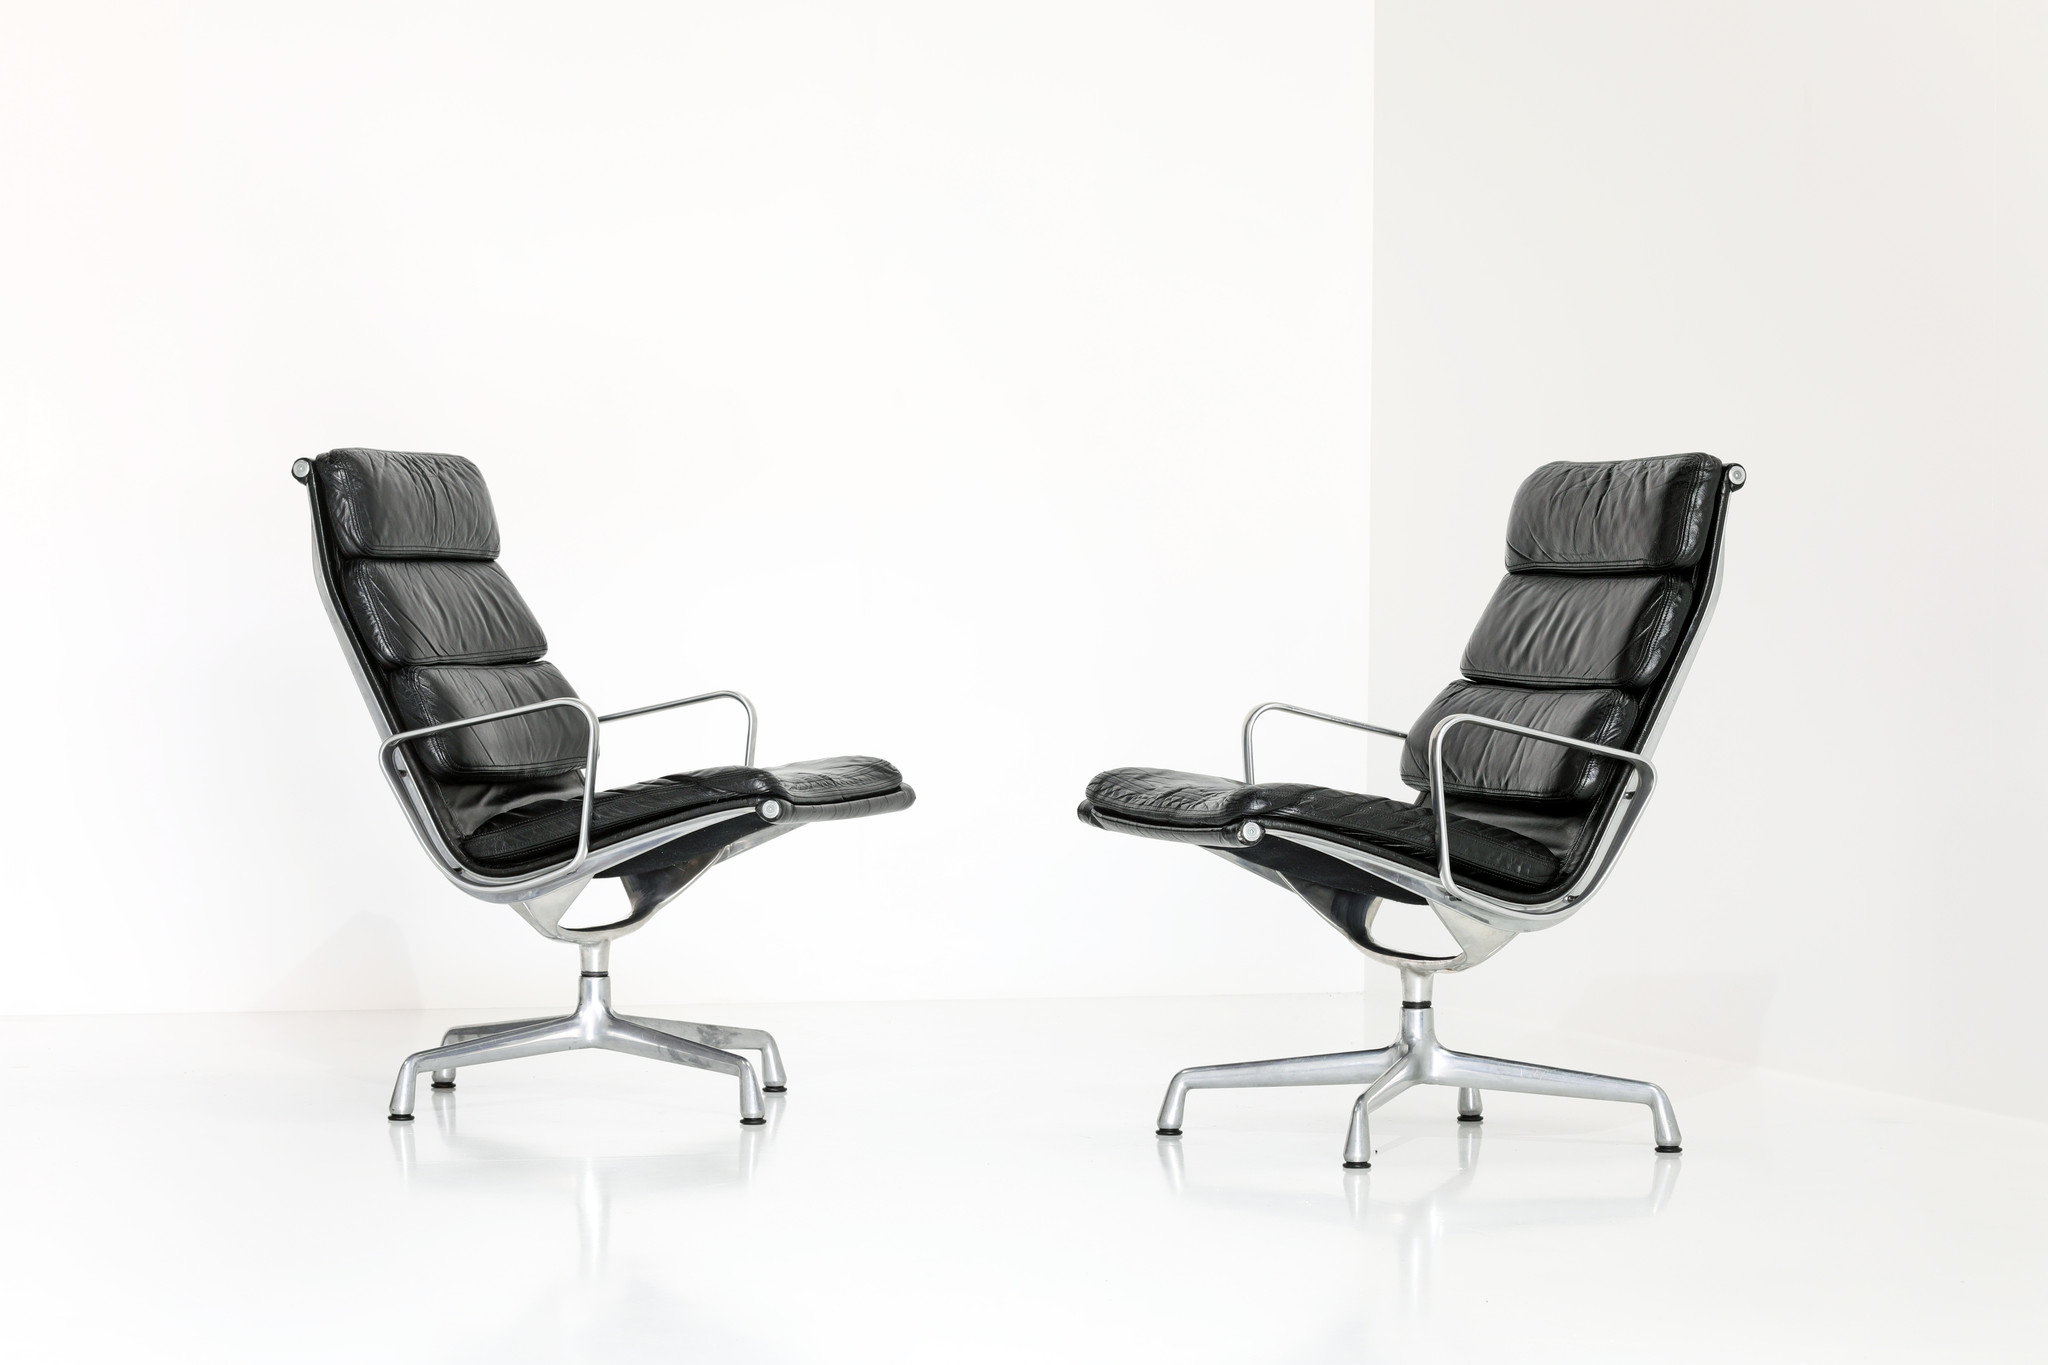 Lounge soft pad chairs designed by Charles Eames for Herman Miller